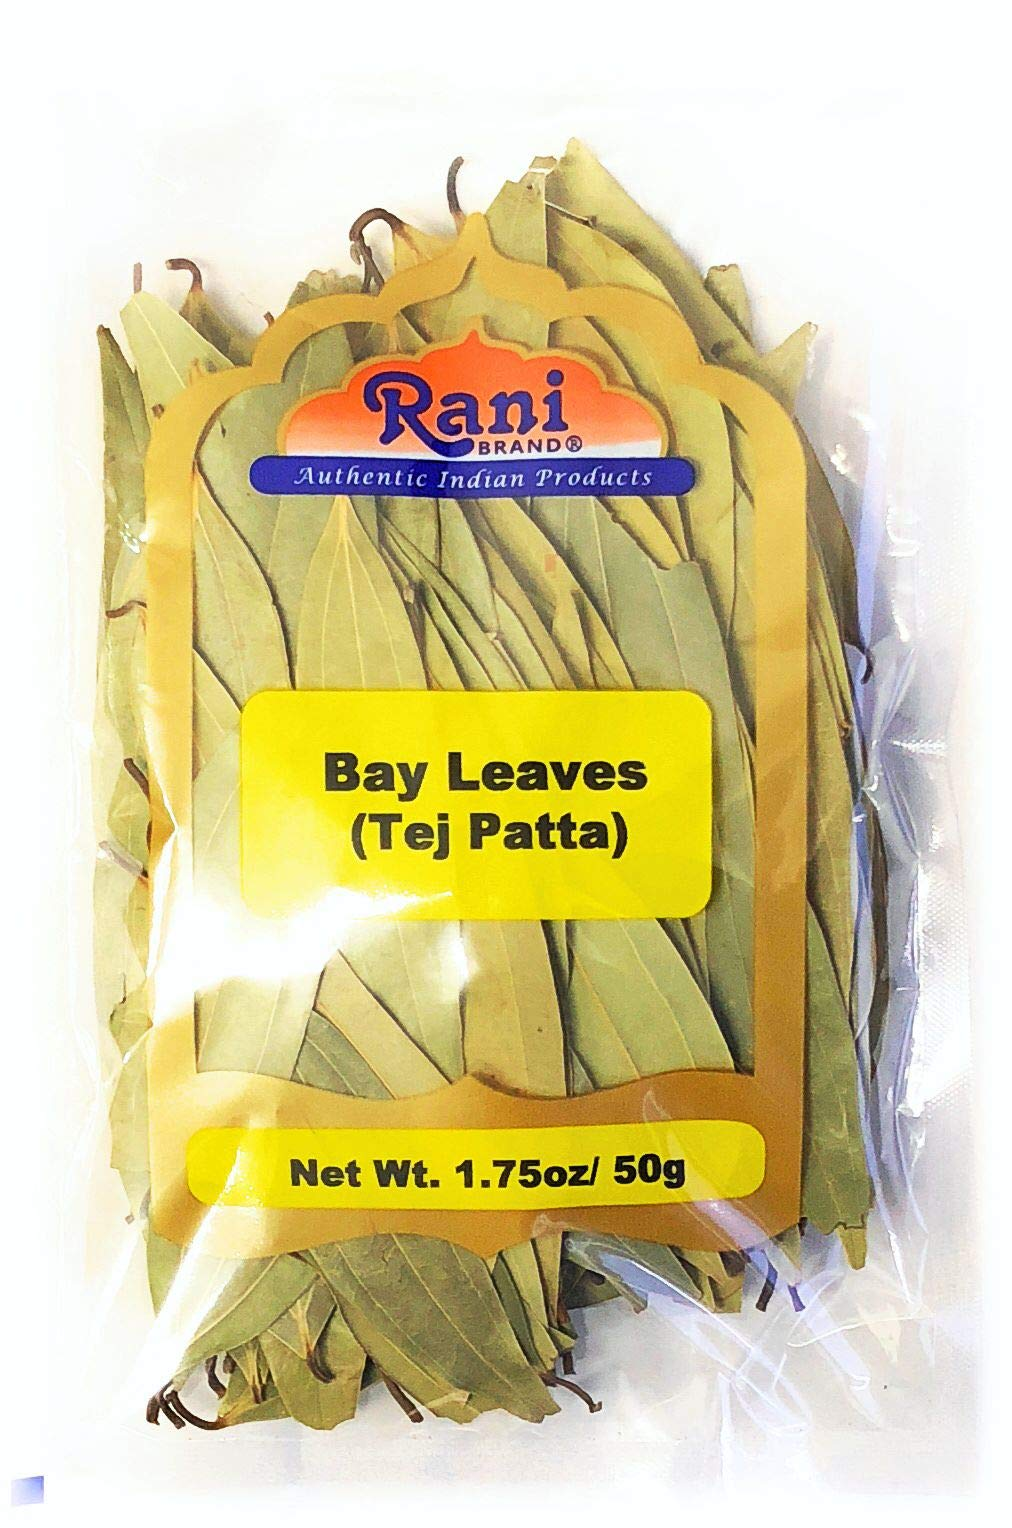 Rani Bay Leaf (Leaves) Whole Spice Hand Selected Extra Large 1.75oz (50g) All Natural ~ Gluten Free Ingredients | NON-GMO | Vegan | Indian Origin